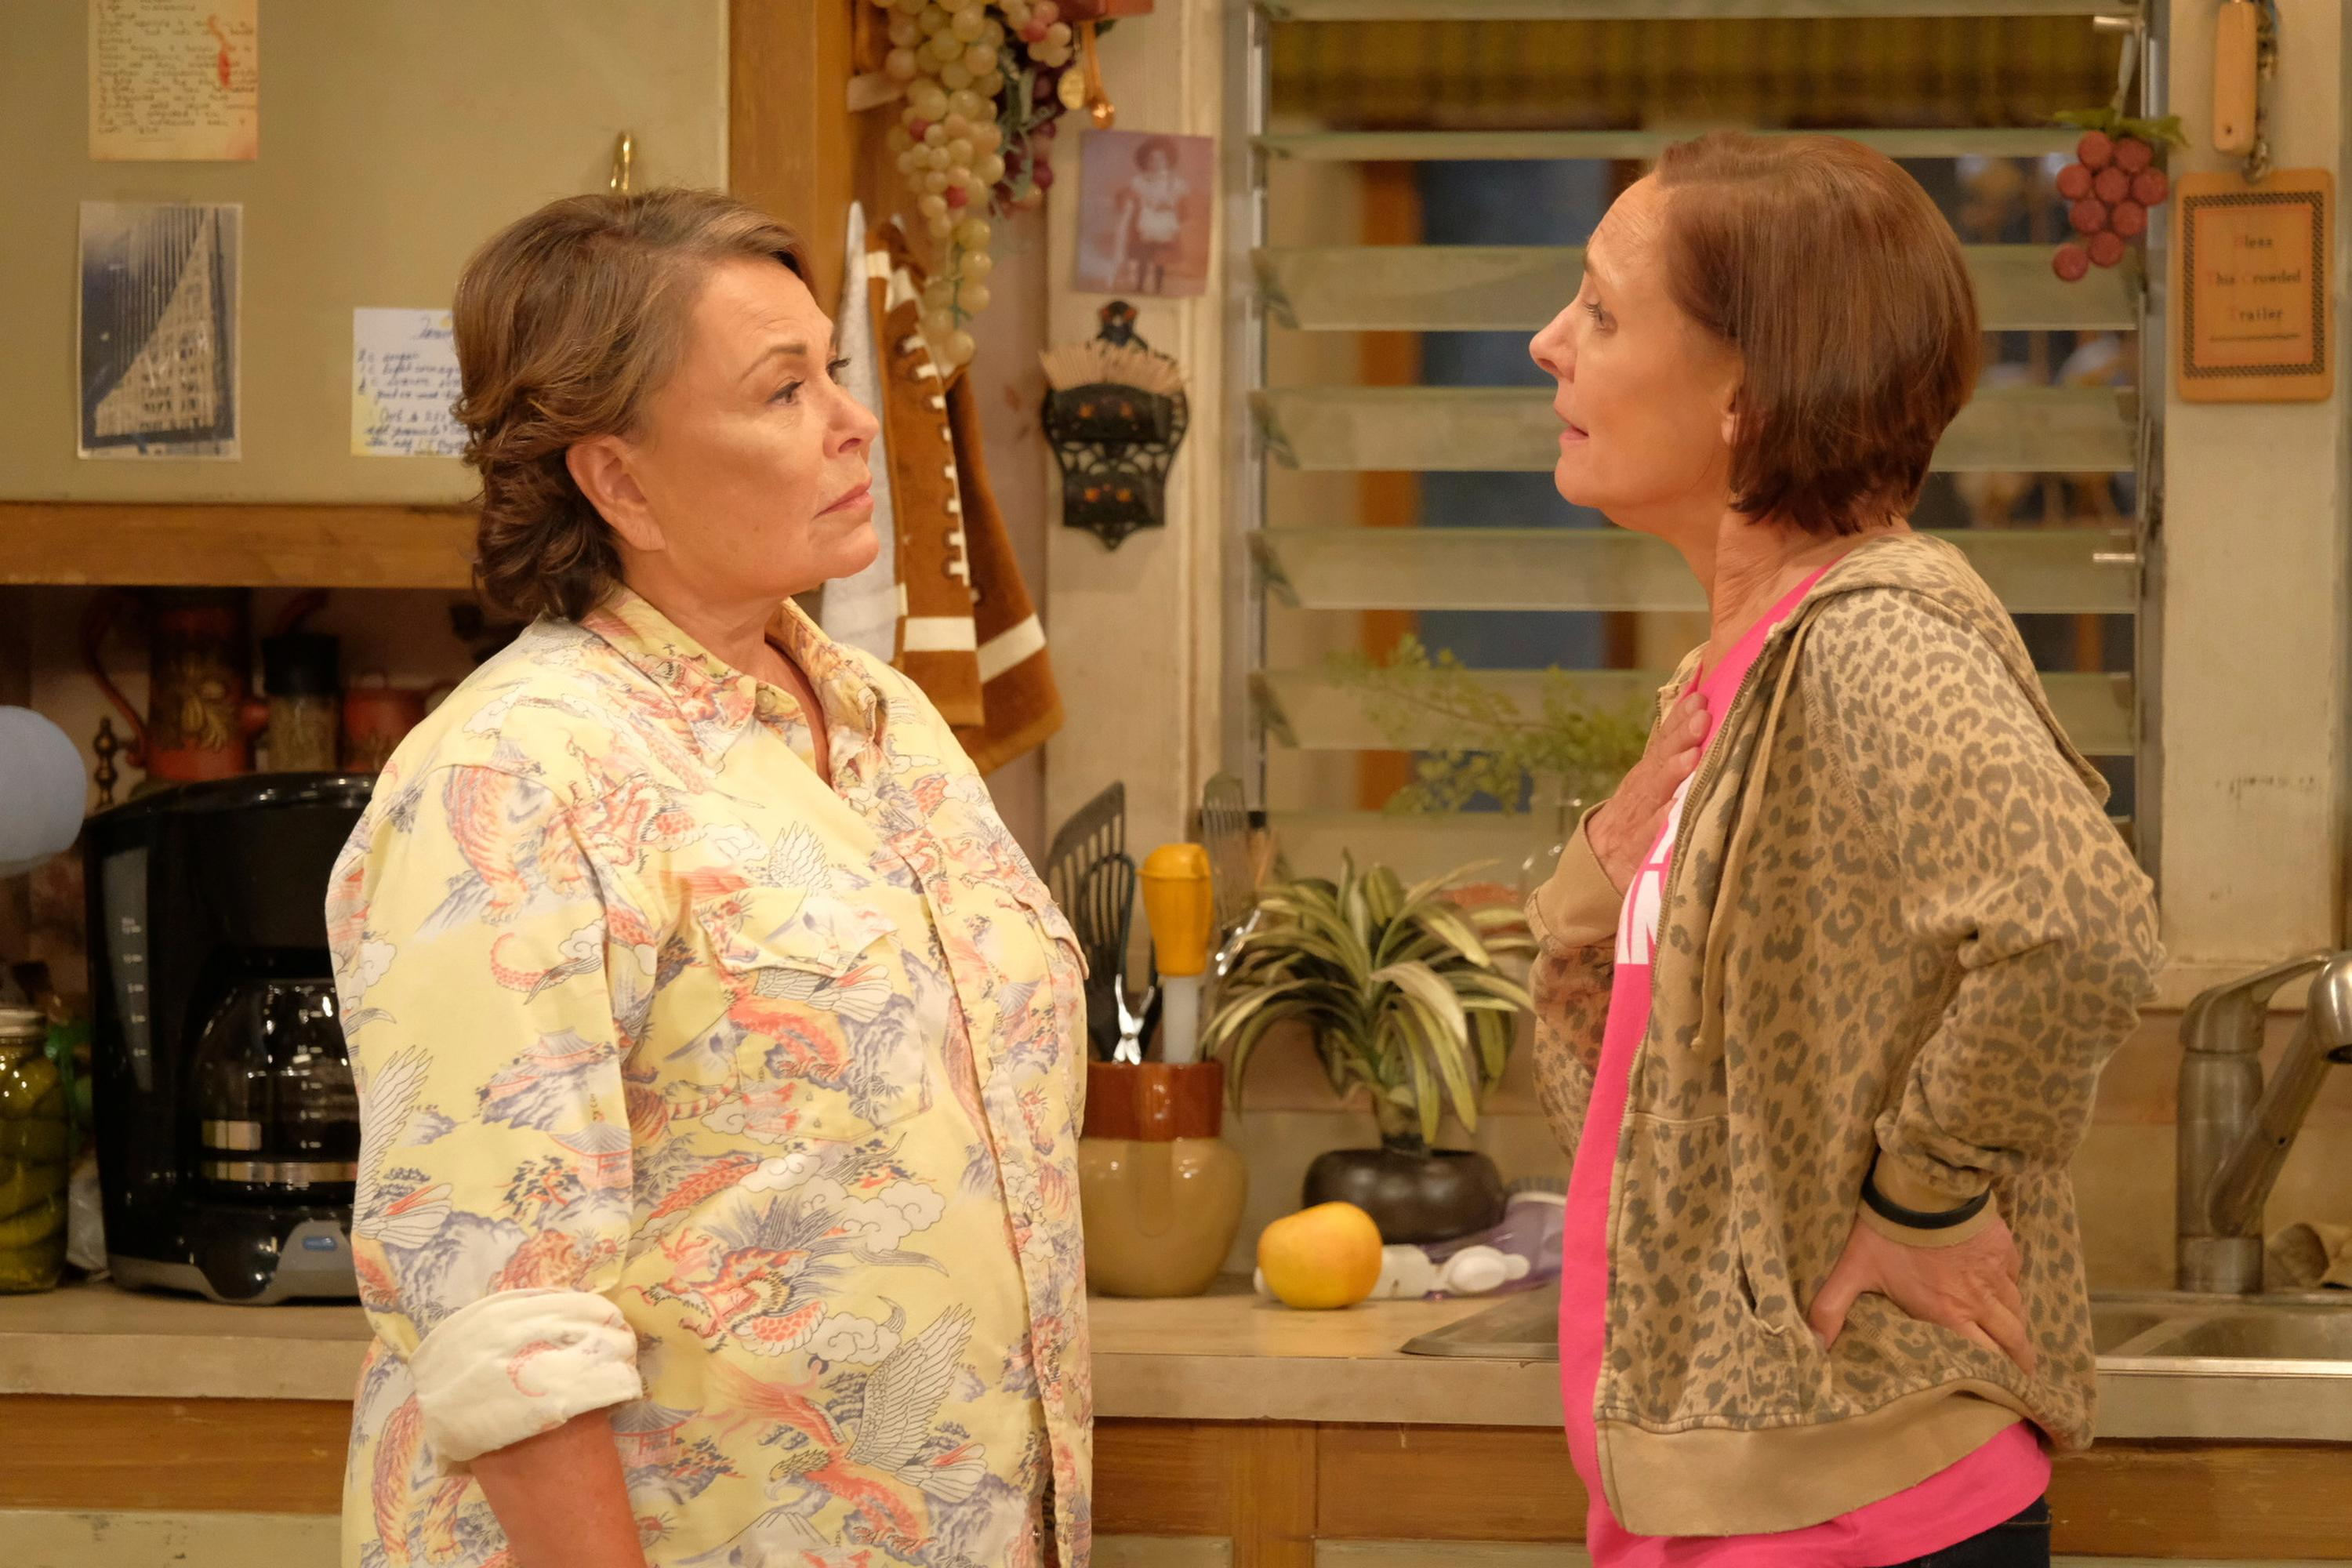 "In this image released by ABC, Roseanne Barr, left, and Laurie Metcalf appear in a scene from the reboot of the popular comedy series ""Roseanne."" 18.4 million viewers tuned in for its premiere. The unprecedented sudden cancellation of TV's top comedy has left a wave of unemployment and uncertainty in its wake. Barr's racist tweet and the almost immediate axing of her show put hundreds of people out of work. (Adam Rose/ABC via AP)"